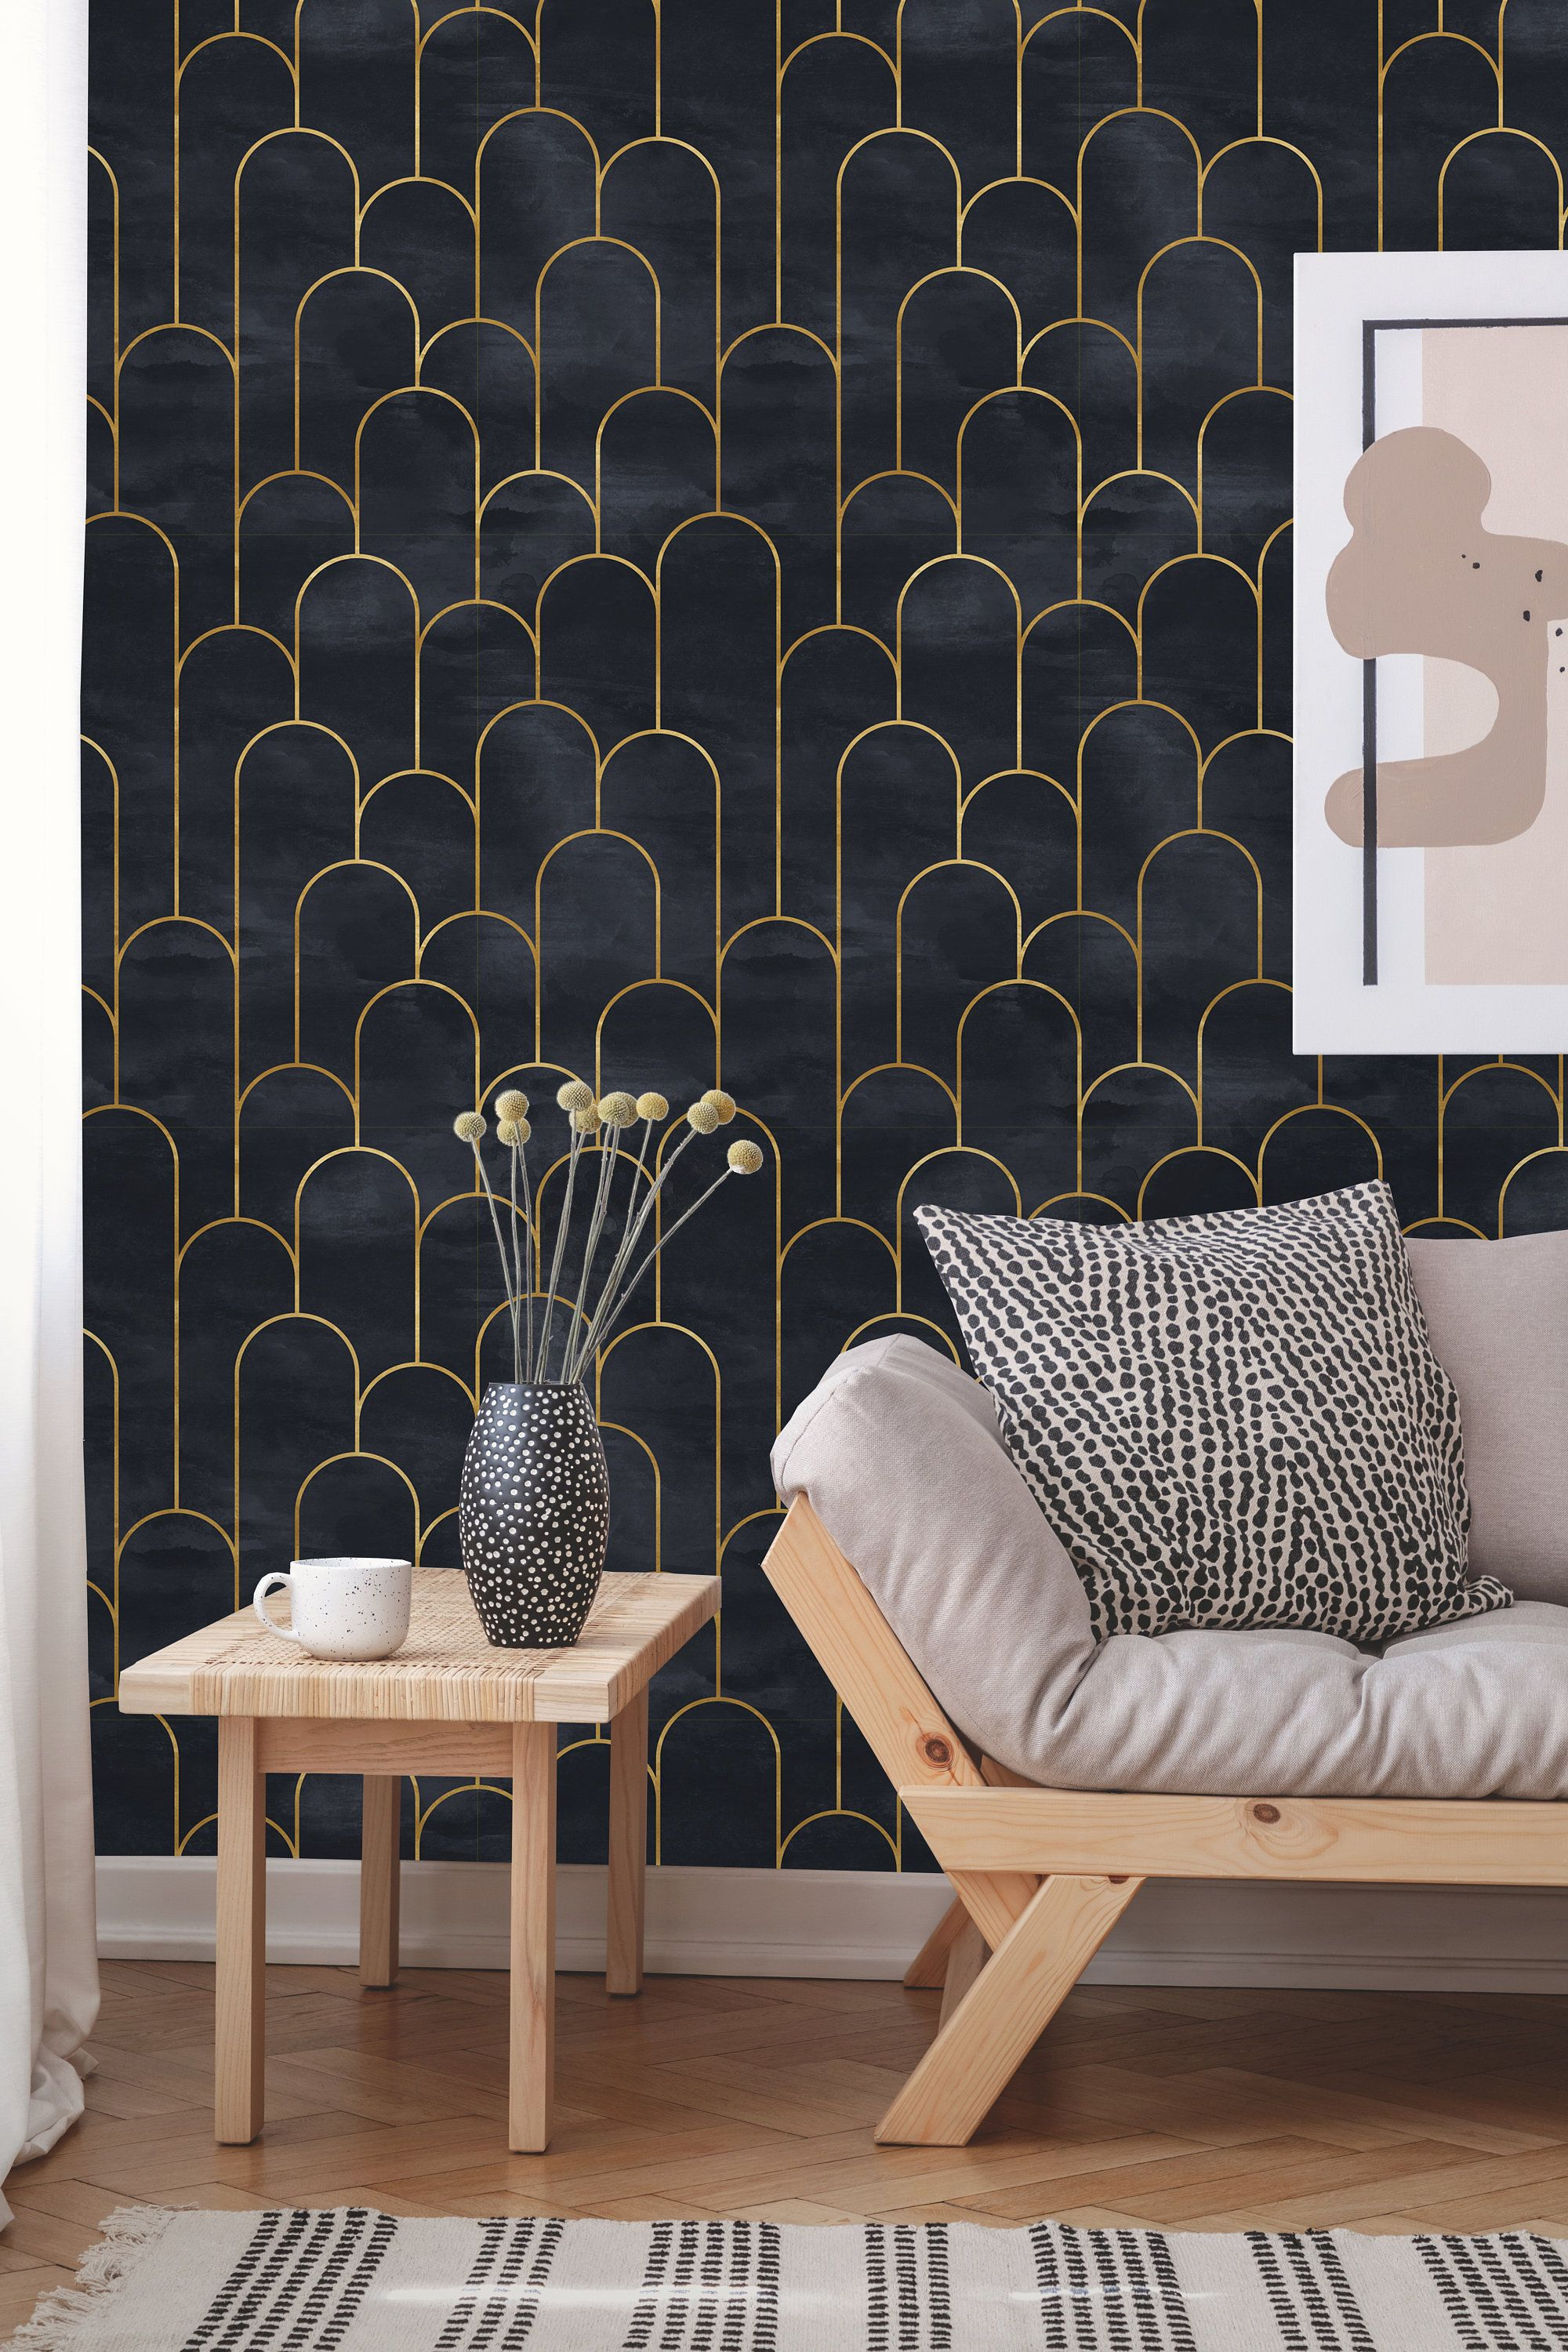 Removable Wallpaper Peel And Stick Geometric Wallpaper Etsy Interior Deco Art Deco Wallpaper Geometric Wallpaper